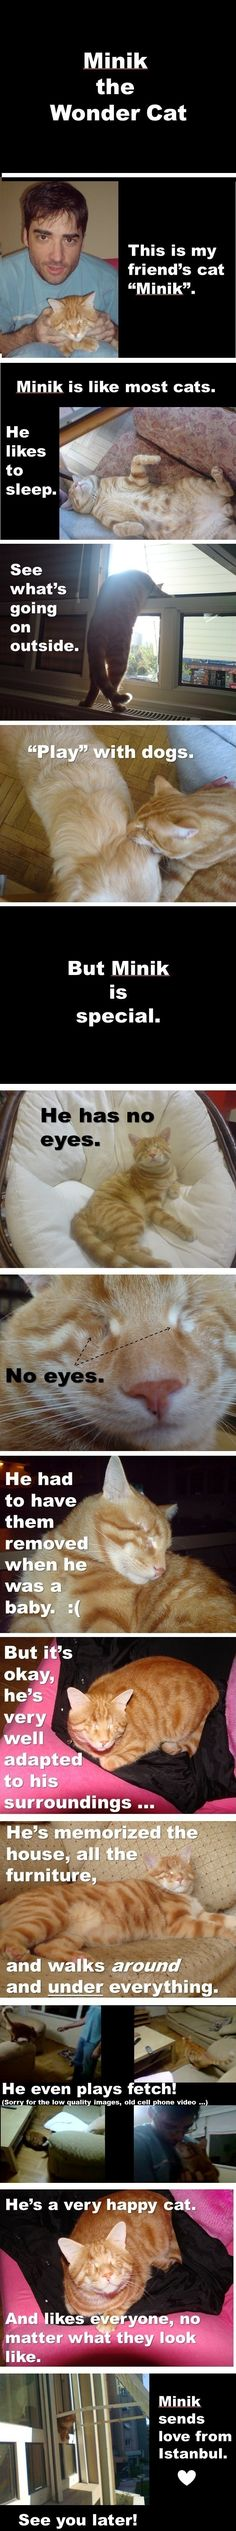 Minik the Wonder Cat // funny pictures - funny photos - funny images - funny pics - funny quotes - #lol #humor #funnypictures